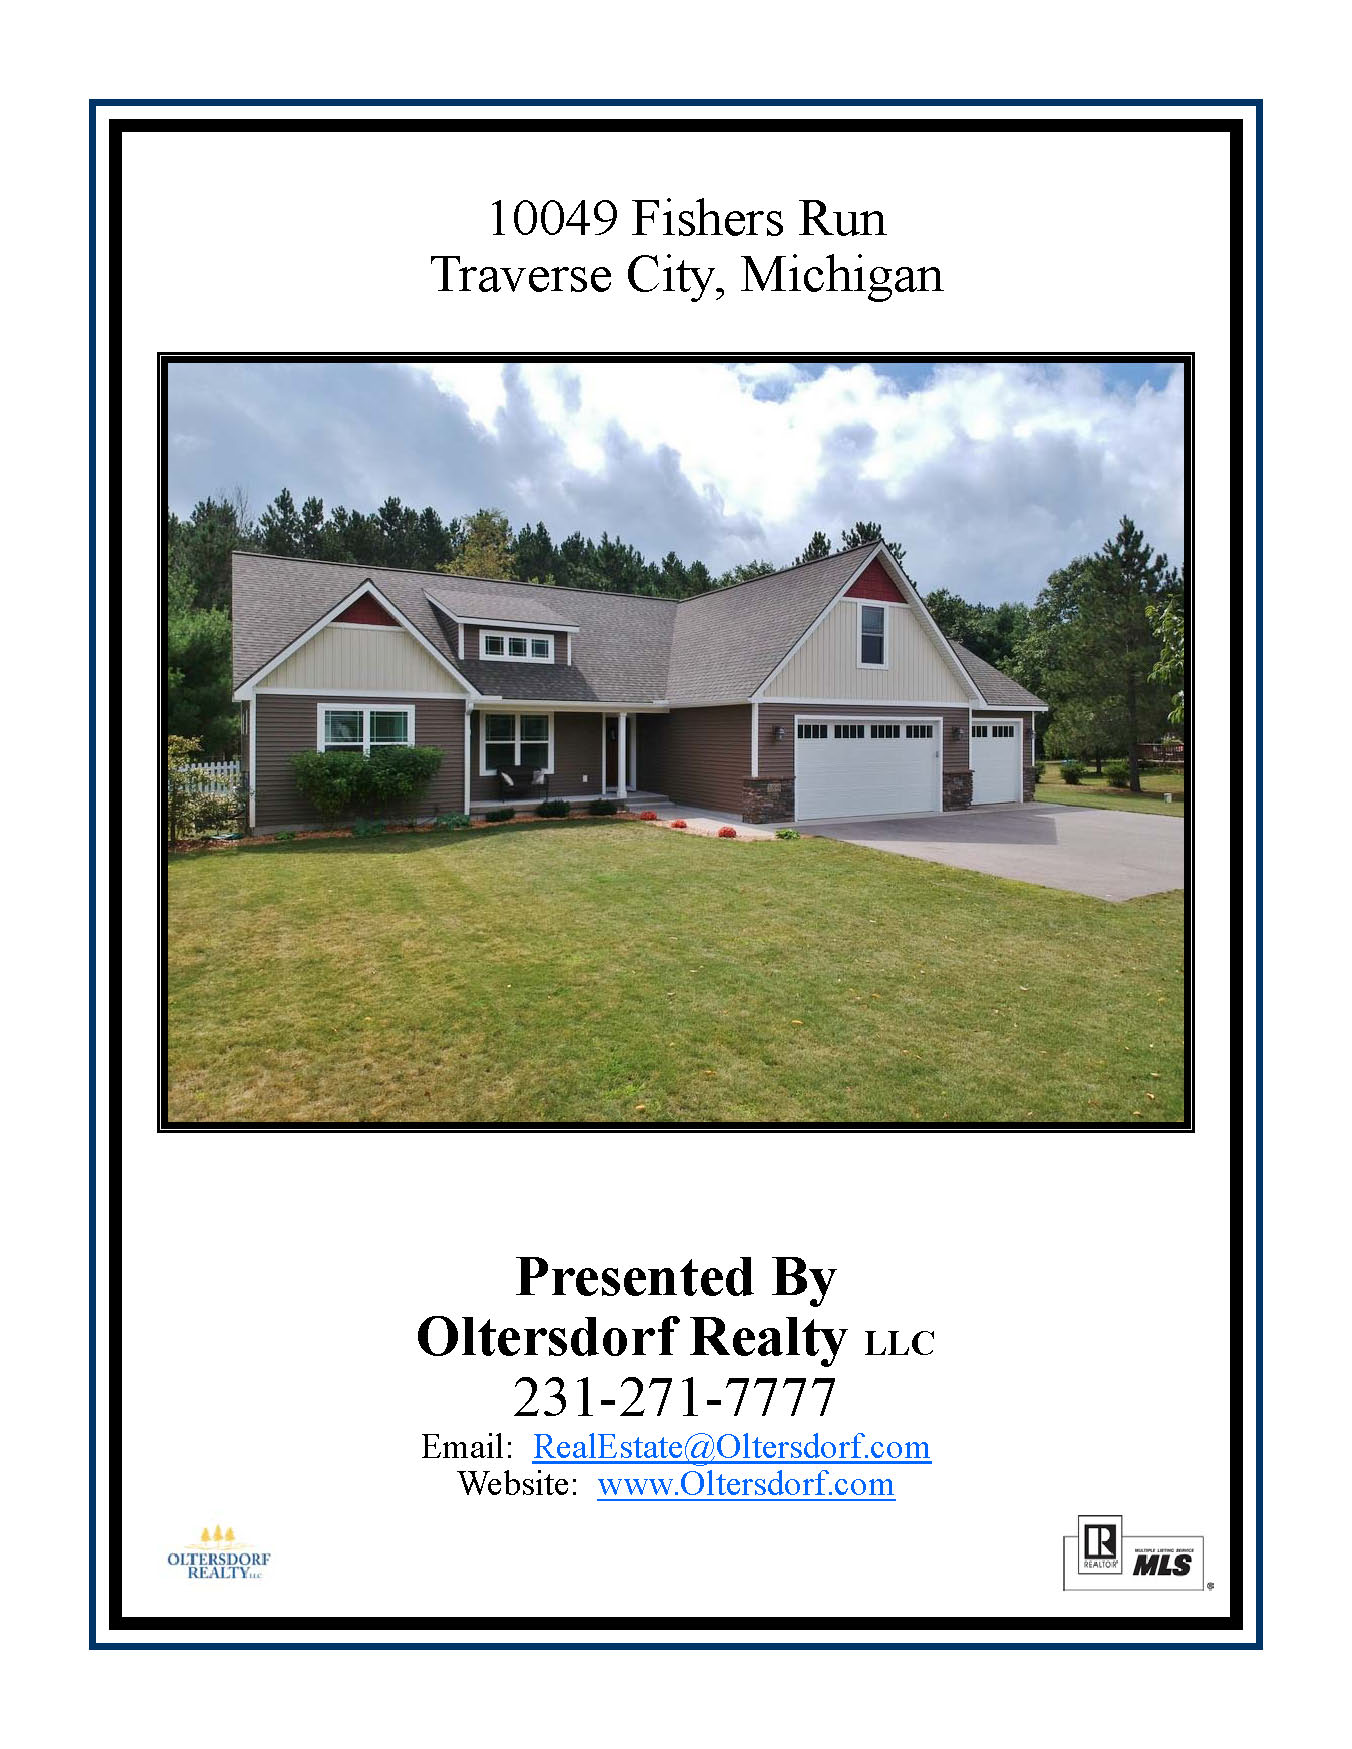 10049 Fishers Run, Traverse City, MI – Newer 2,175 Sq Ft Home on 1.32 Acres - Marketing Packet (1).jpg